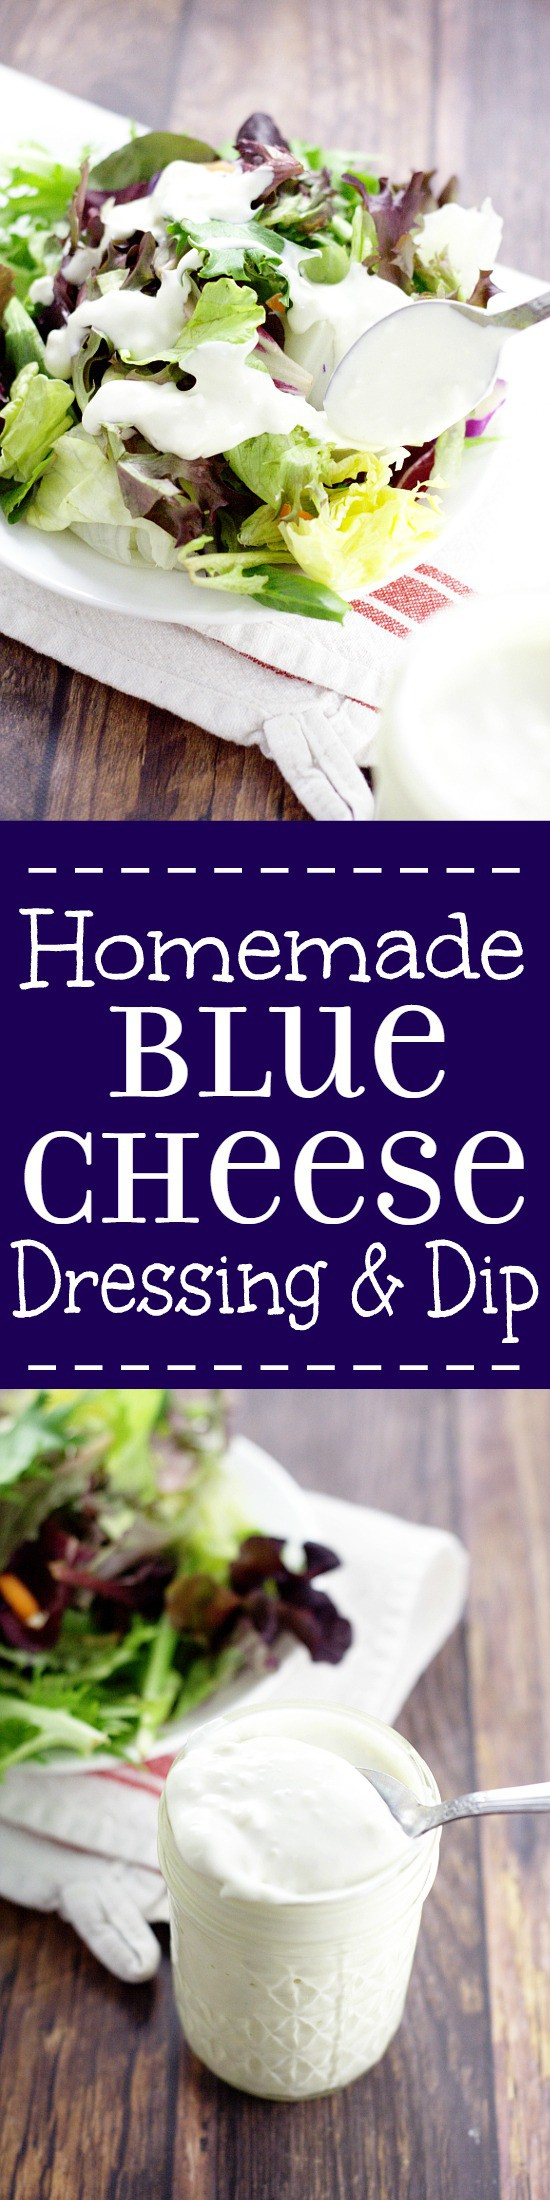 Homemade Buttermilk Blue Cheese Dressing and Dip. This creamy, rich Homemade Buttermilk Blue Cheese Dressing recipe is the perfect dip for hot wings or dressing for your favorite salad. Definitely trying this!